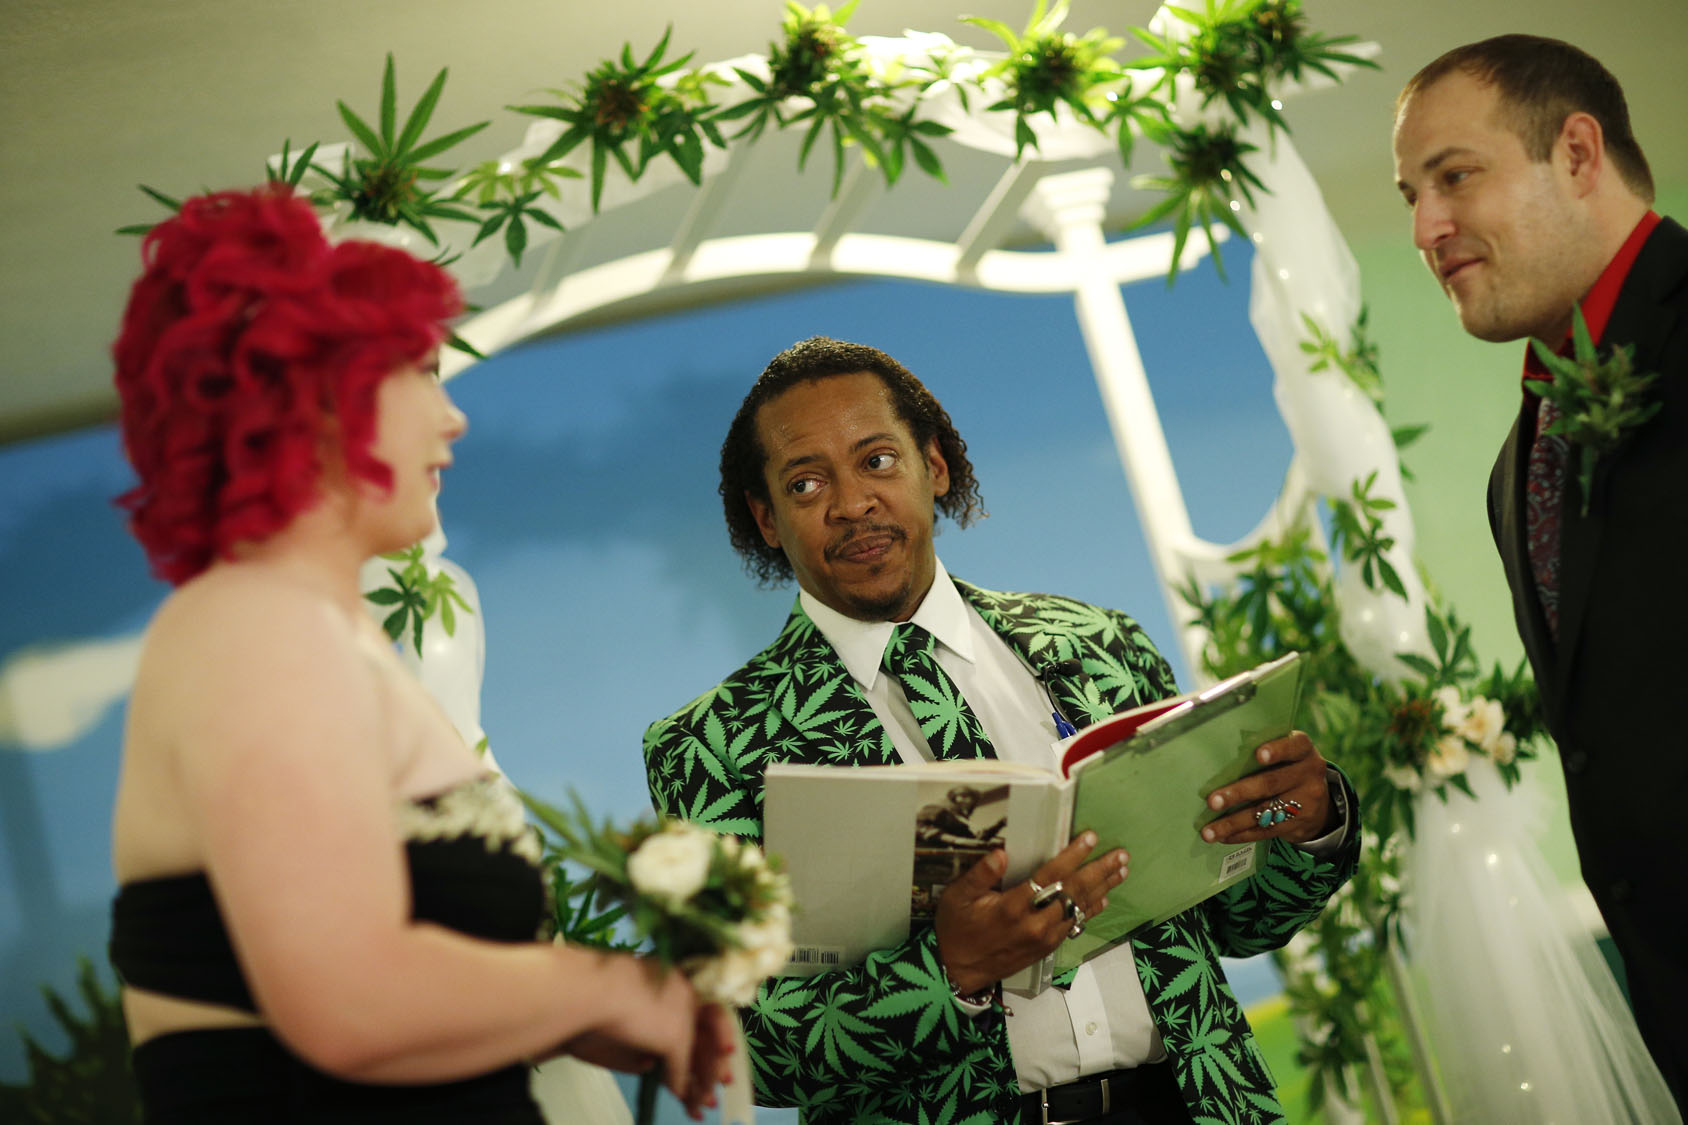 Marijuana users celebrate the plant's unofficial 4/20 holiday